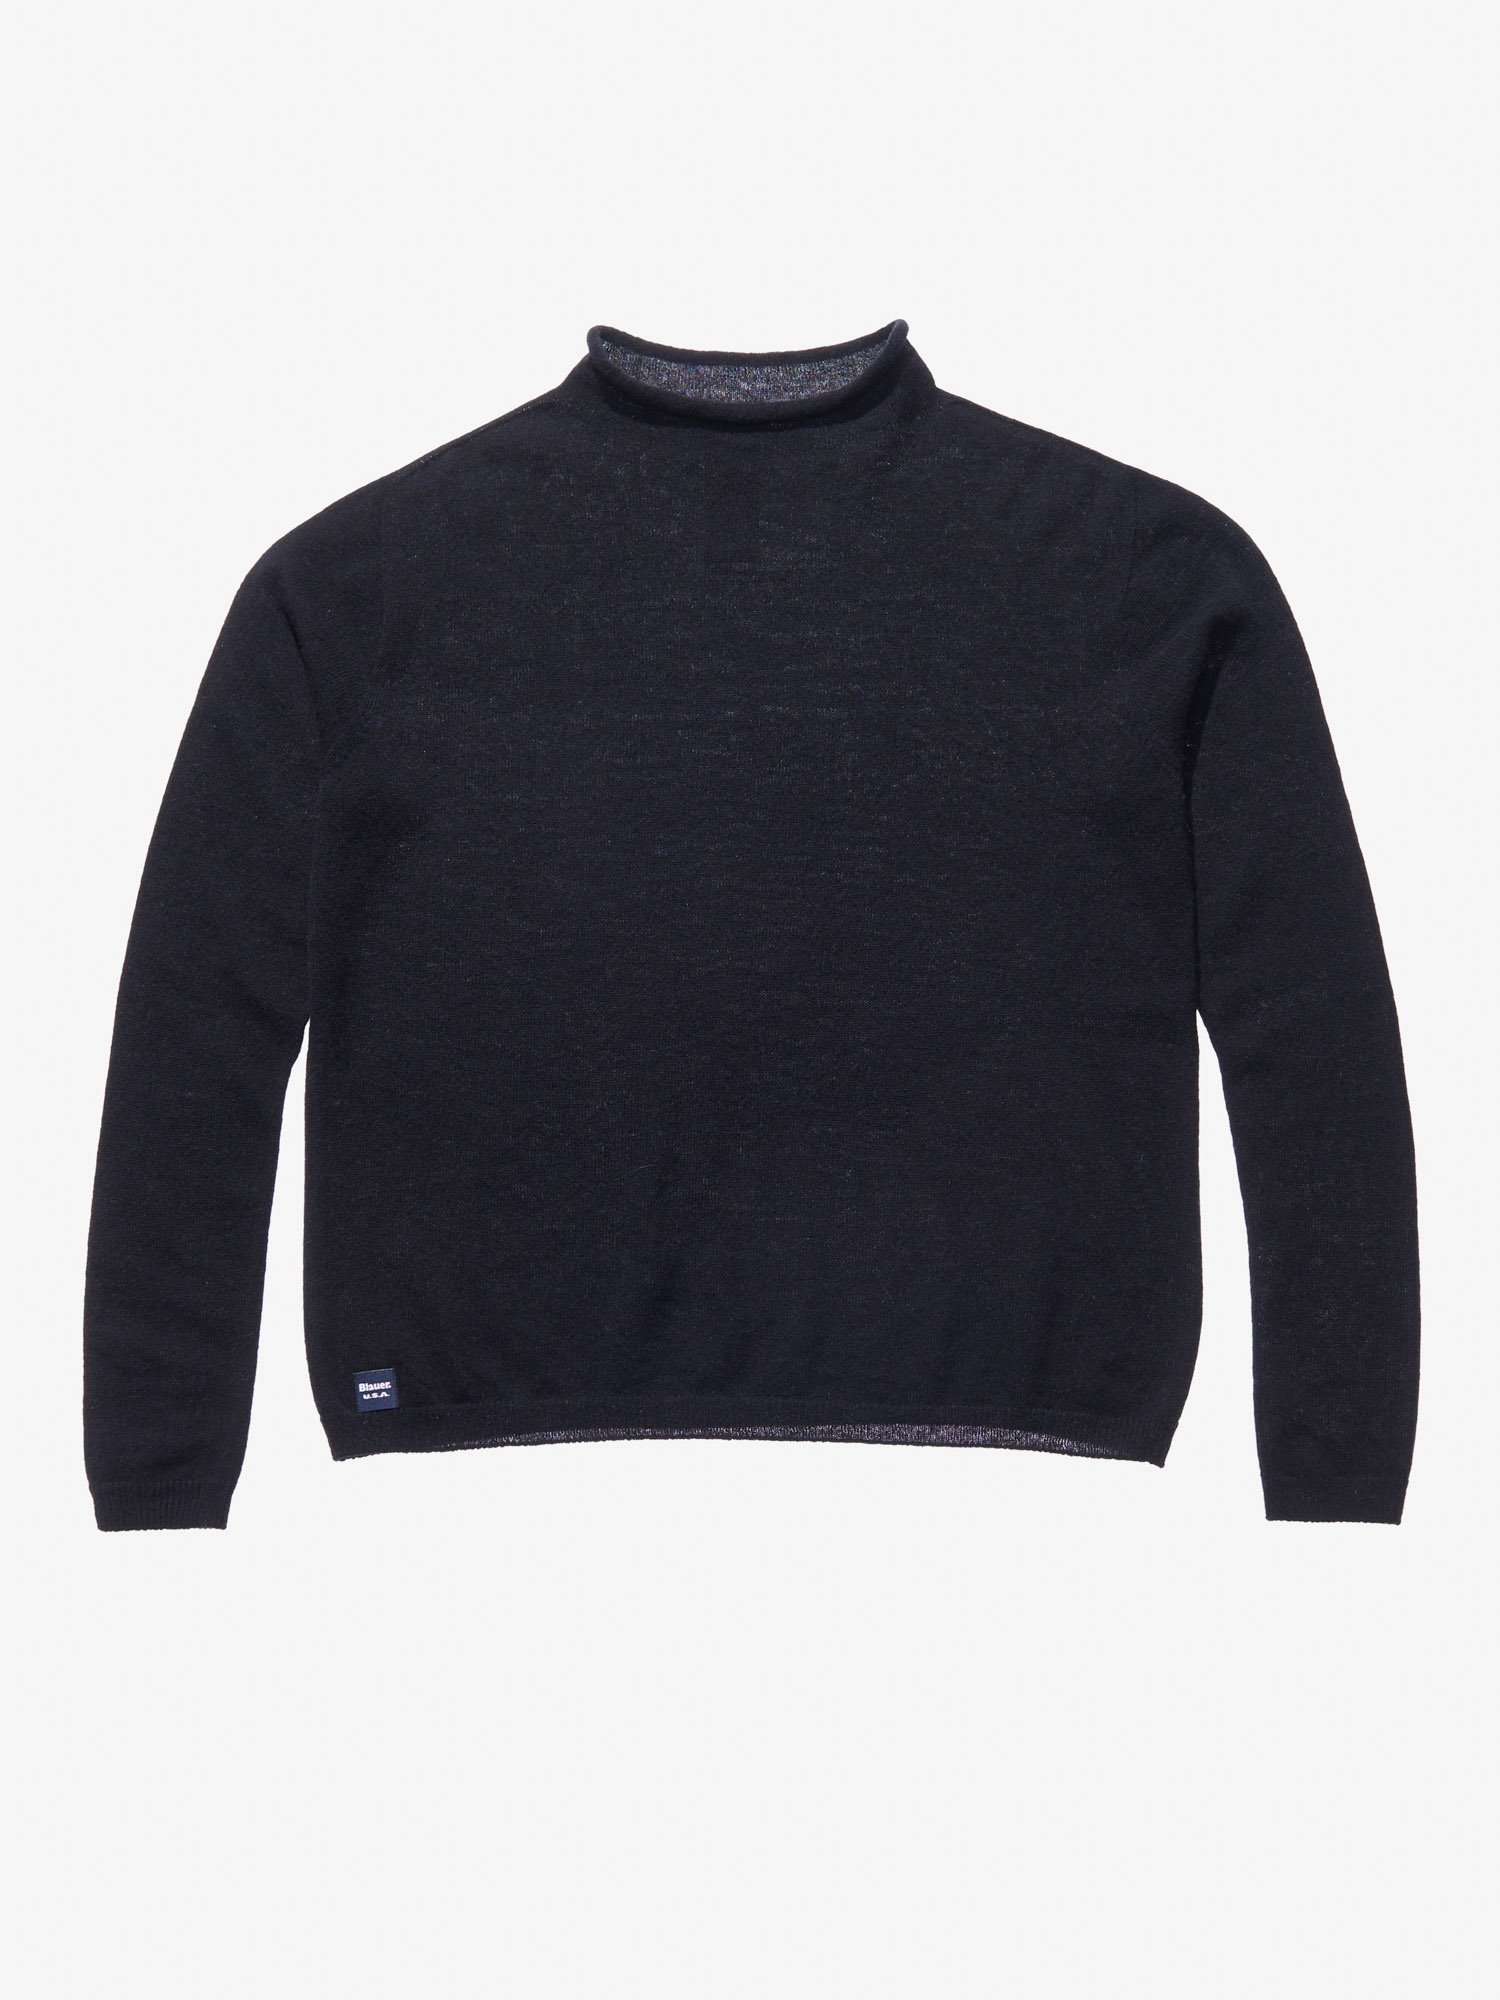 STOCKING STITCH KNIT WOOL CASHMERE TURTLENECK - Blauer